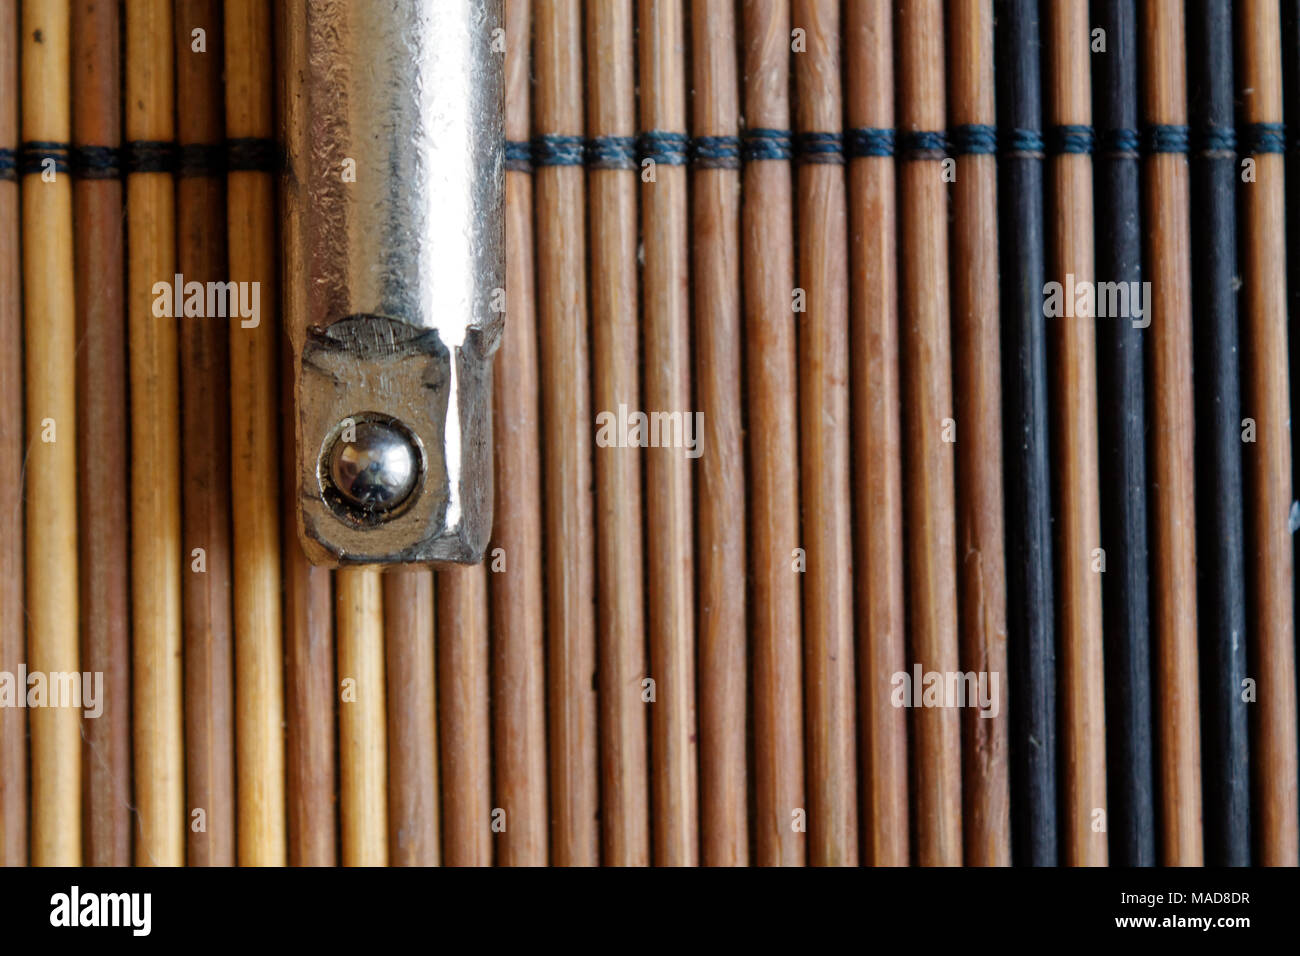 Spanner fasteners on wooden background, wrench part - Stock Image